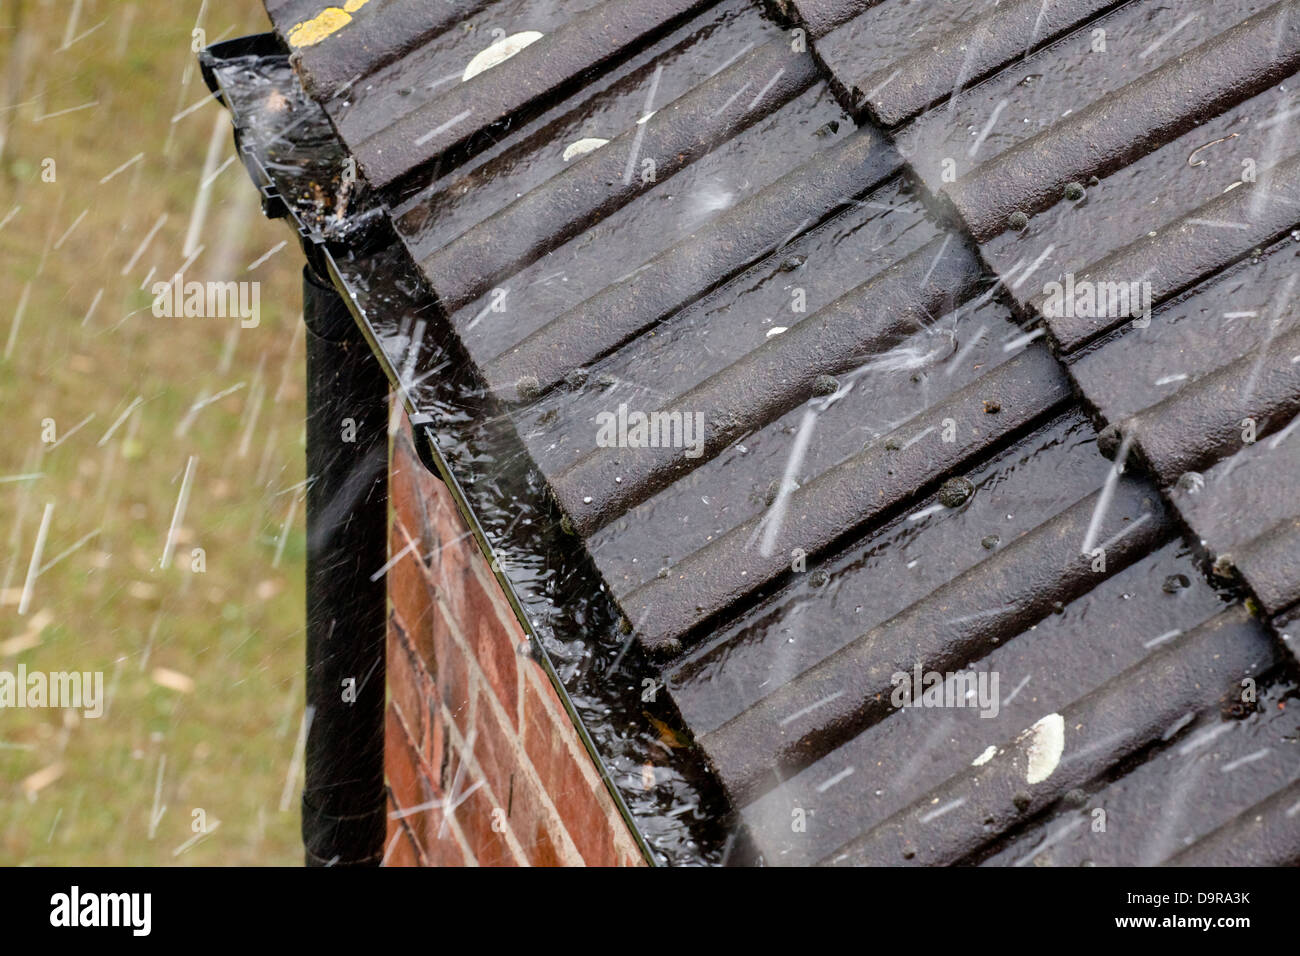 Heavy rain falling on a roof, England, UK - Stock Image